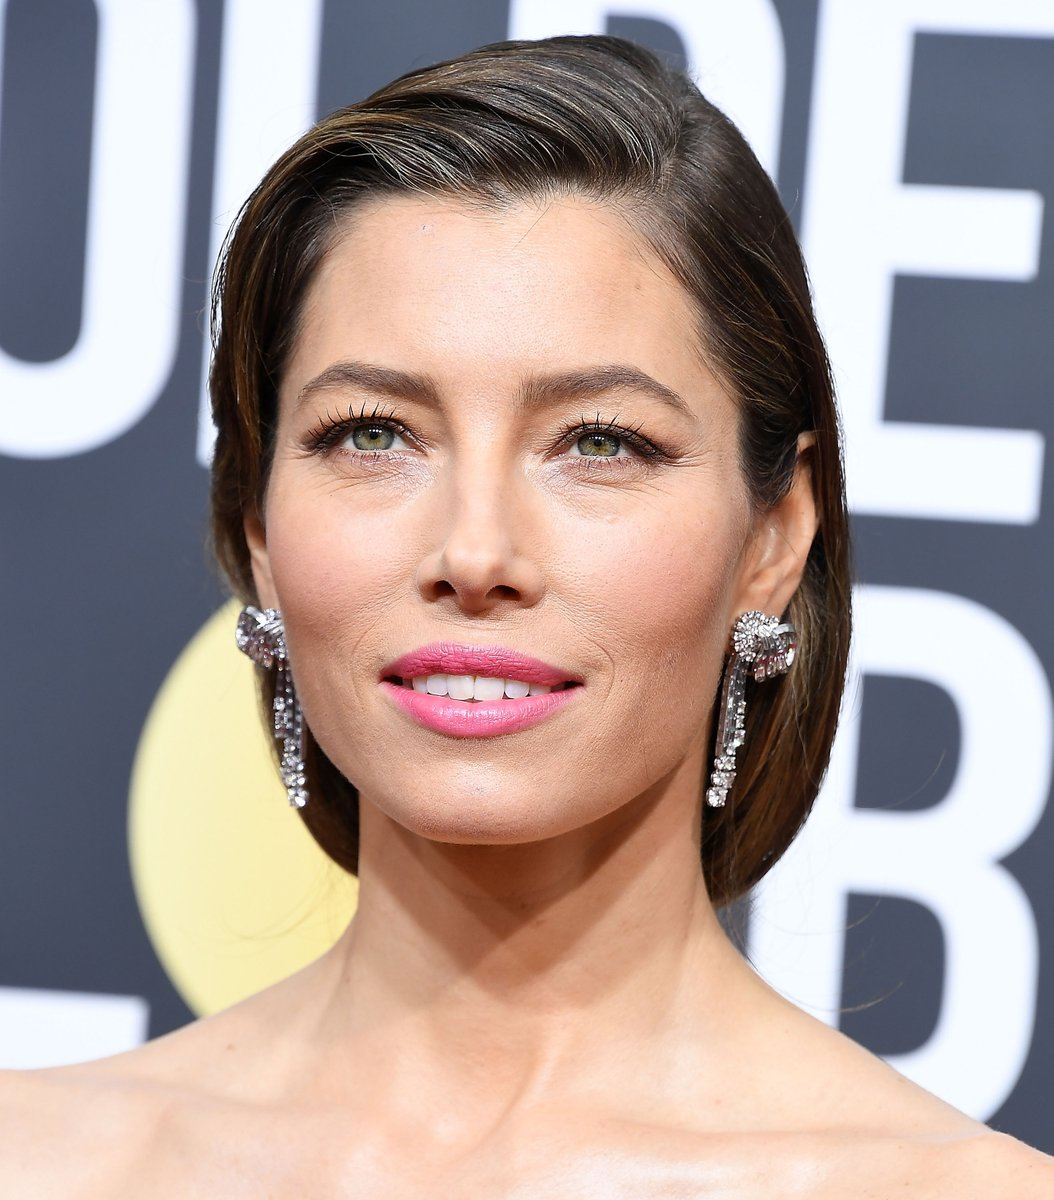 This Is The EXACT Lipstick Jessica Biel Wore To The Golden Globes